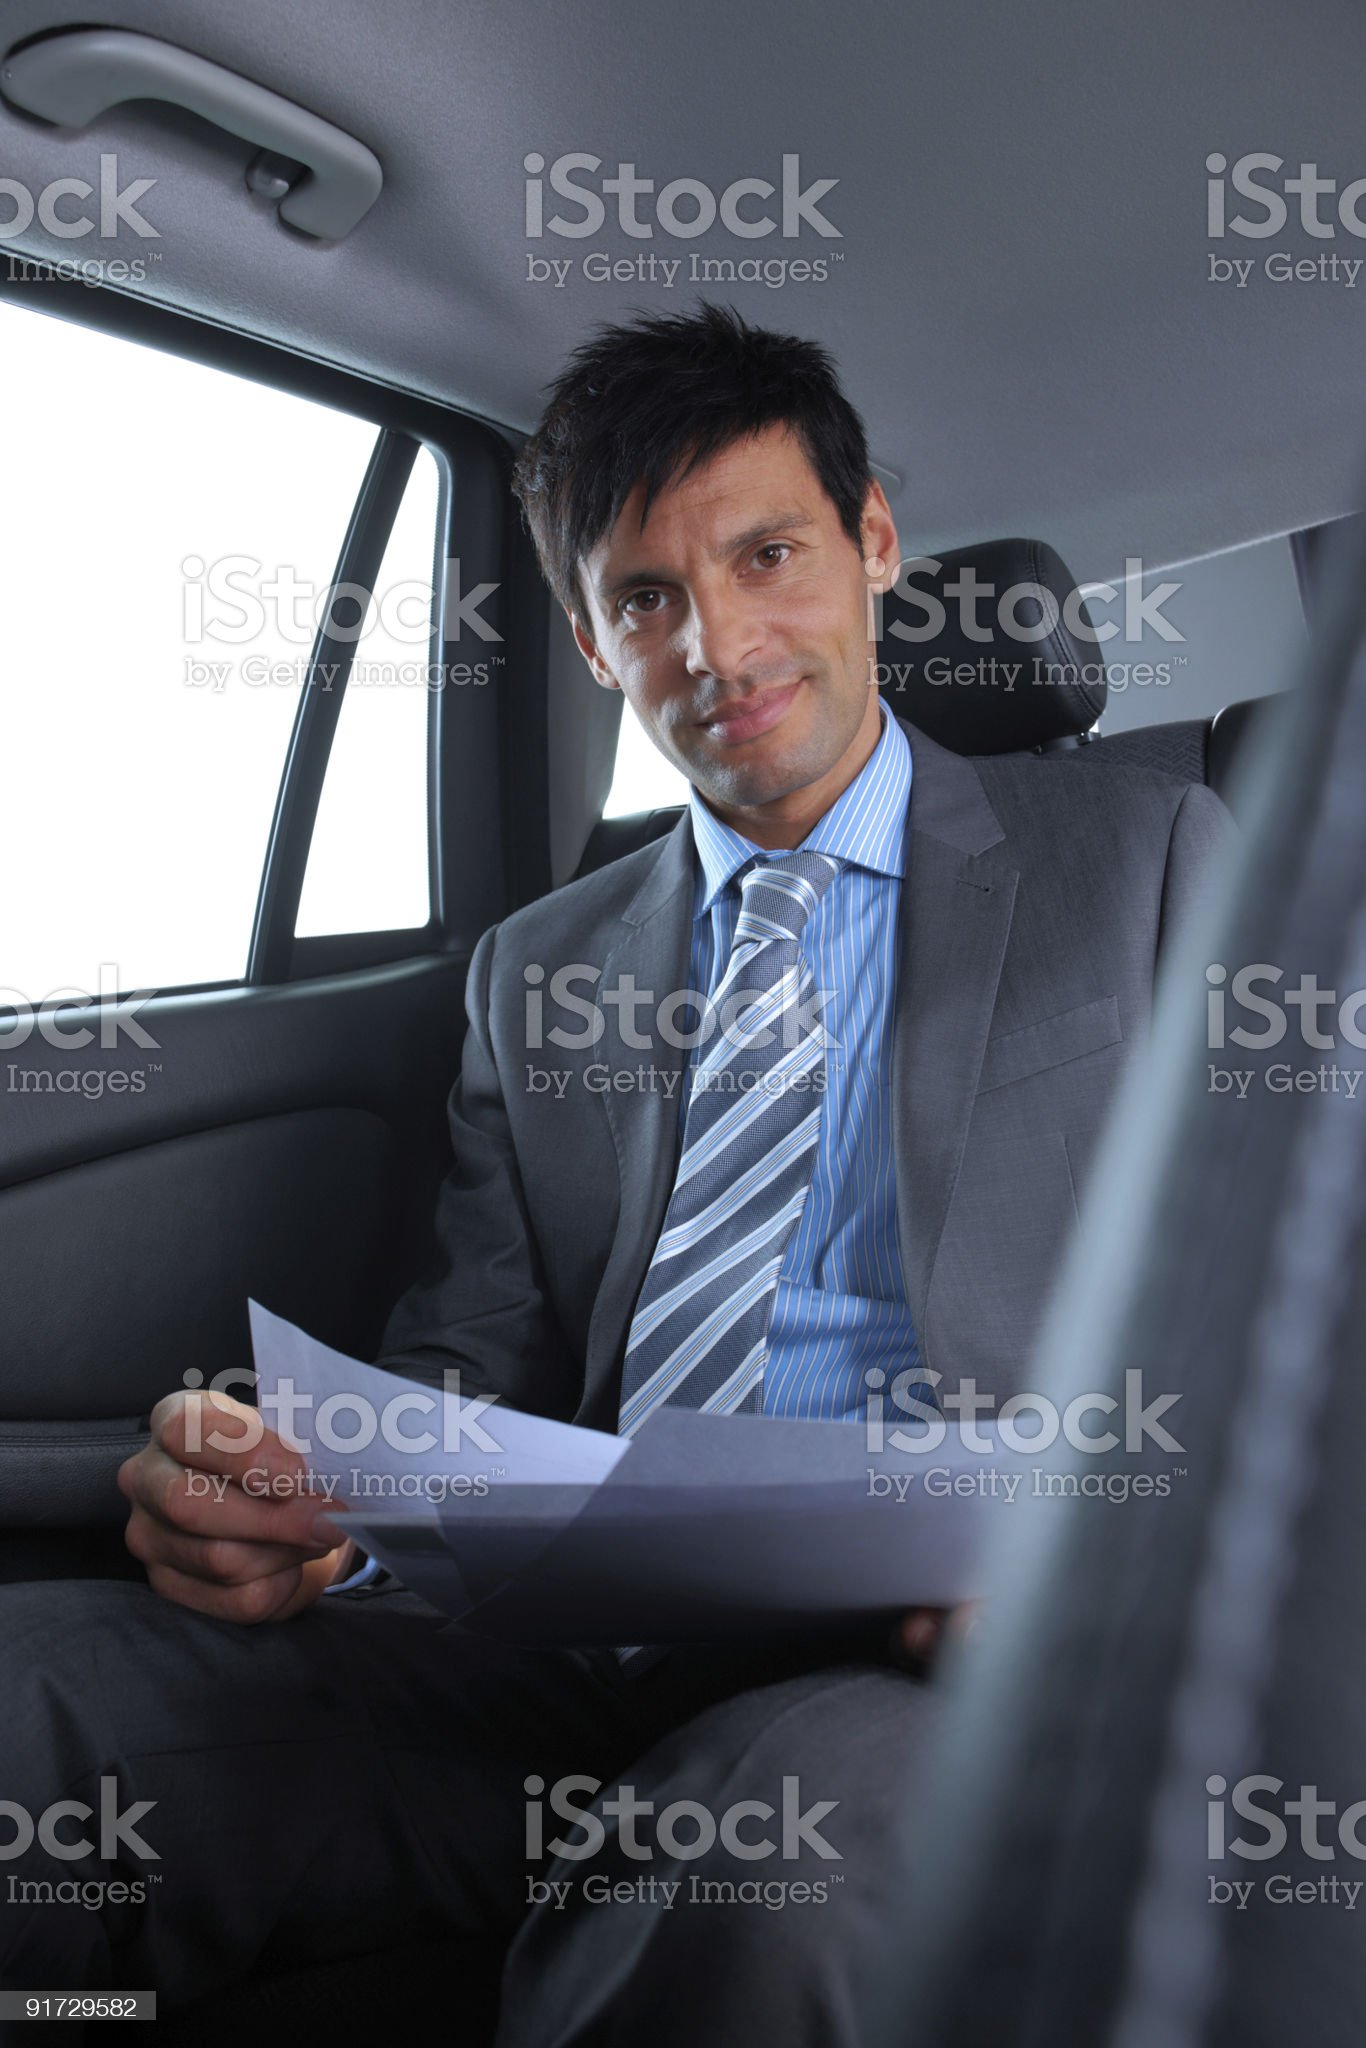 mature Business man reading reports in the back of car royalty-free stock photo